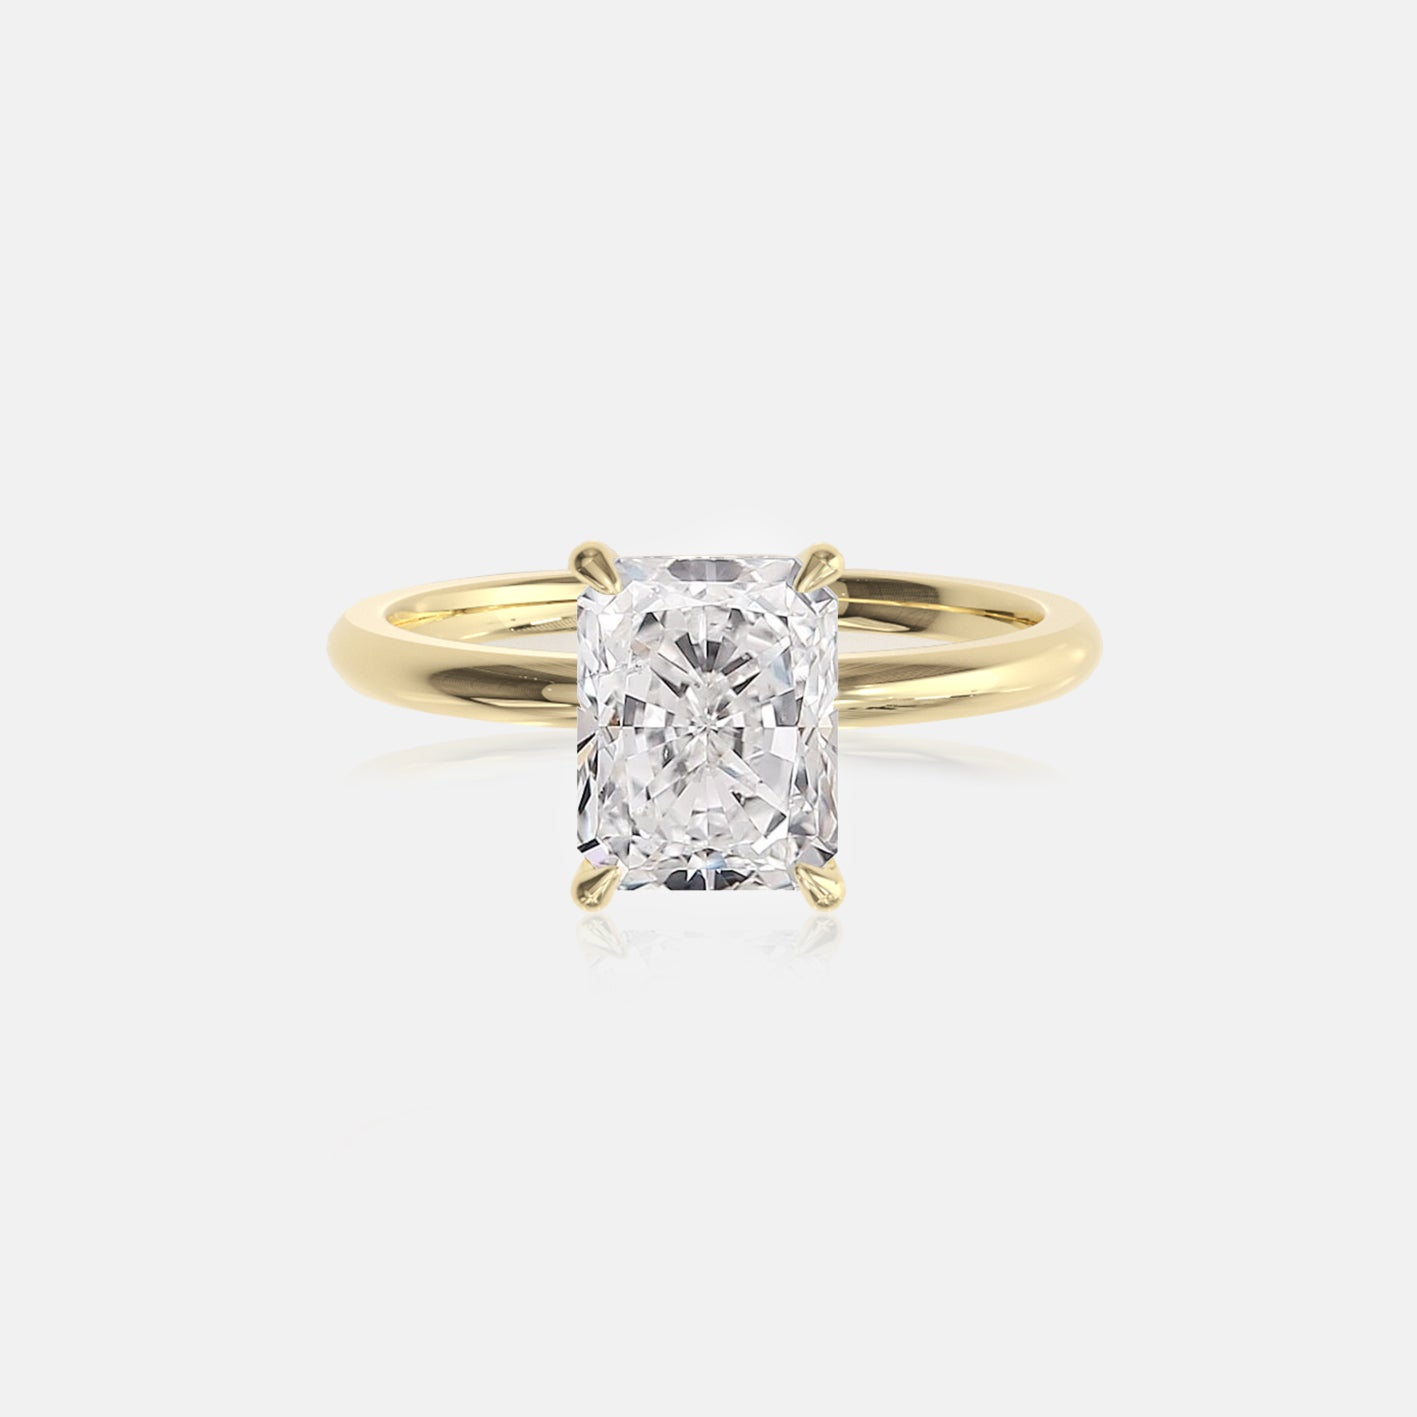 Radiant Moissanite Ceremonial Solitaire